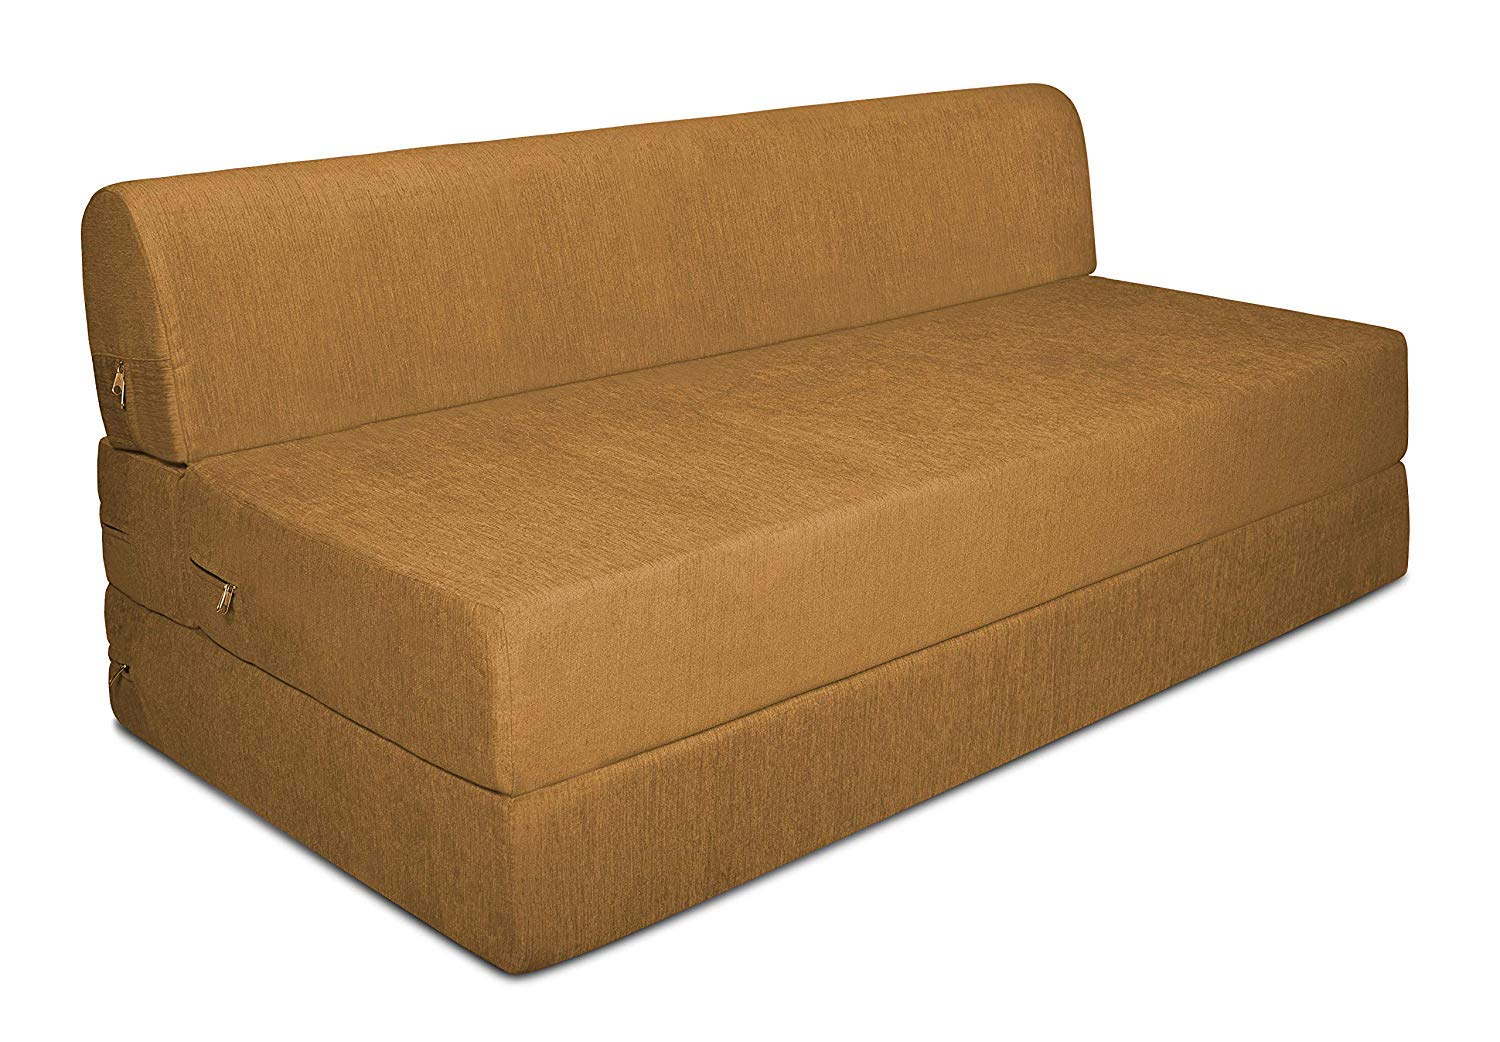 Buy sofa cum bed 4x6 for living room- Aart store